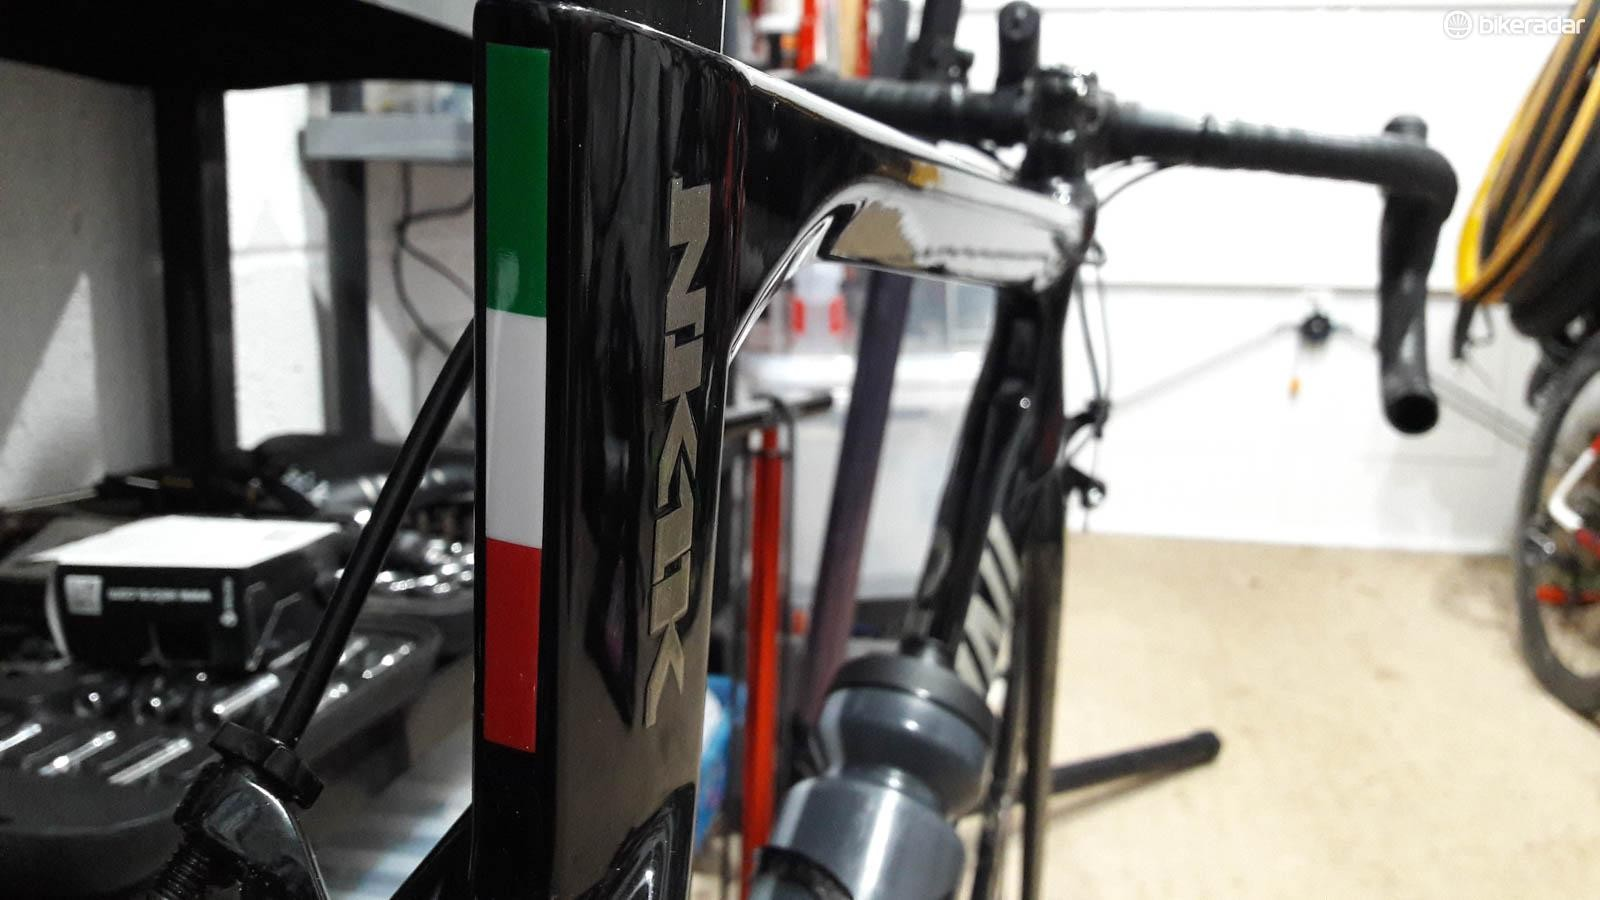 Cipollini's NK1K doesn't have an extravagant build, but it feels really special